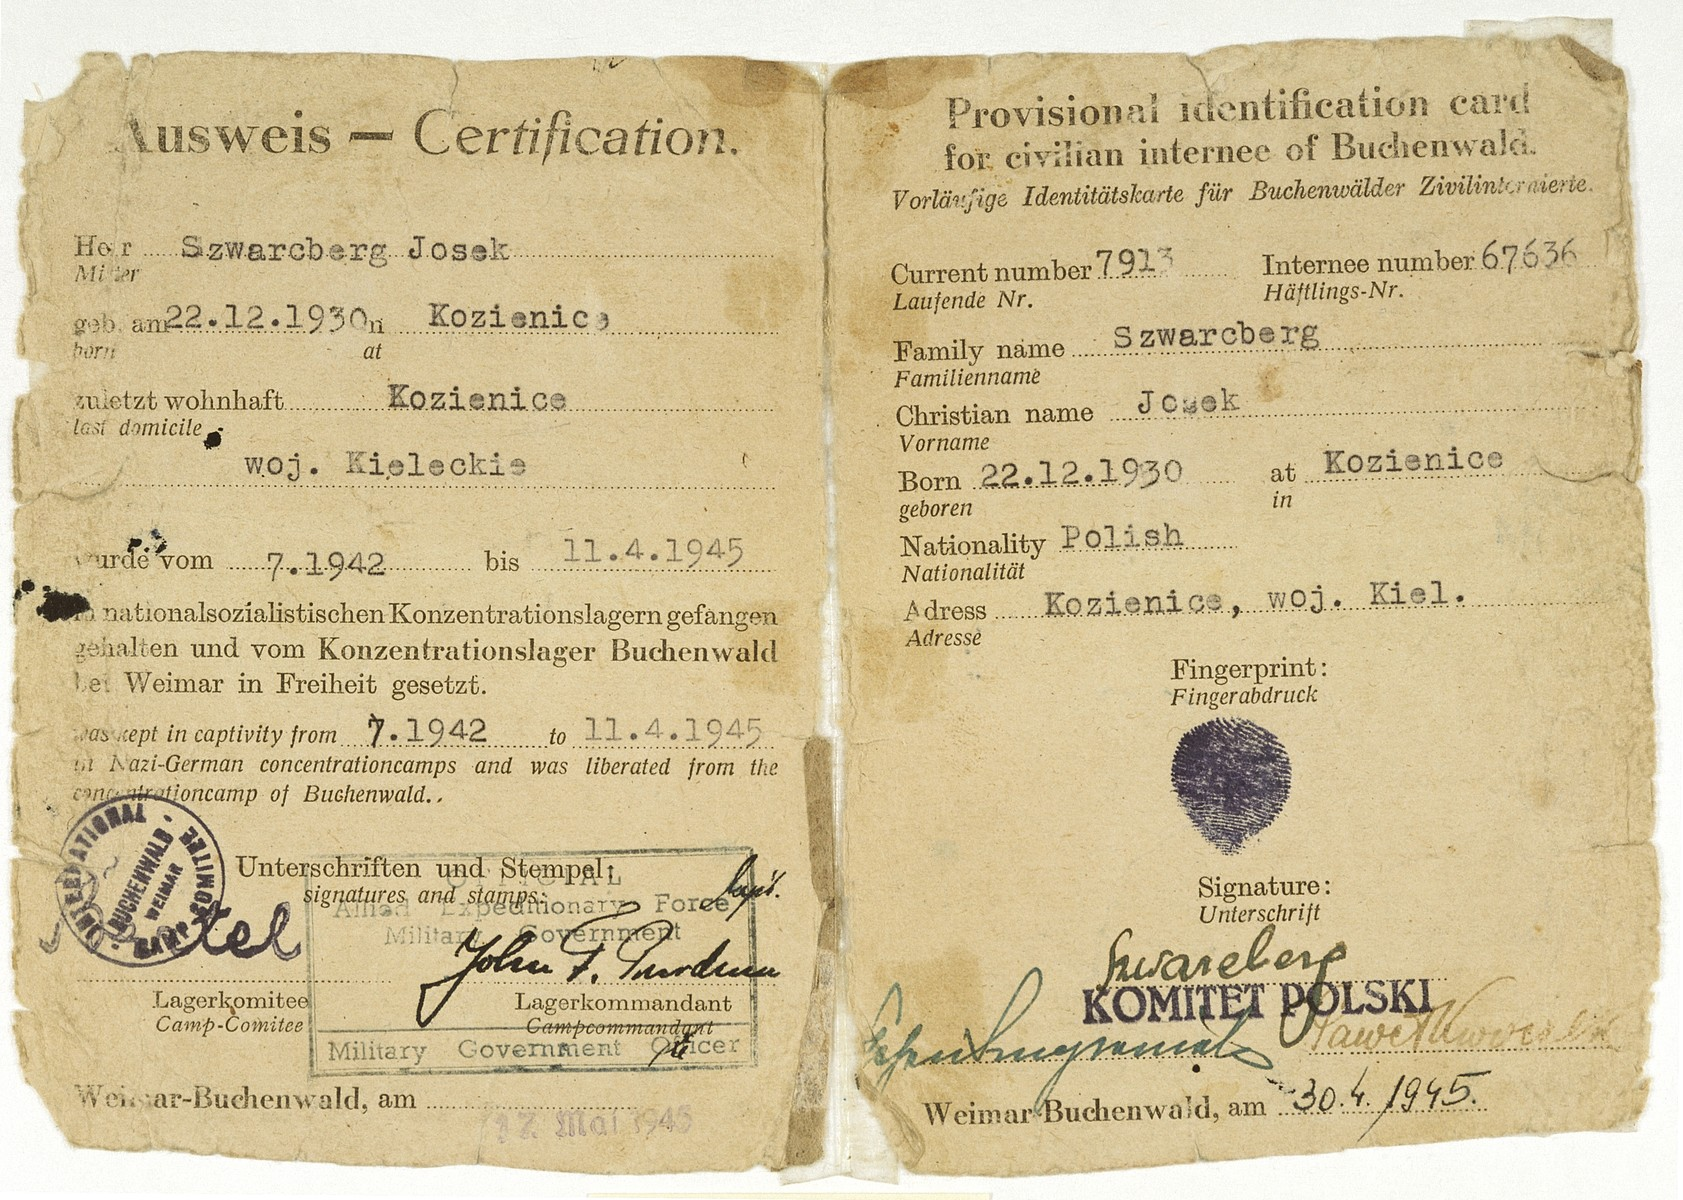 Identification card issued to child survivor, Joseph Szwarcberg, by the American military government after his liberation from Buchenwald.